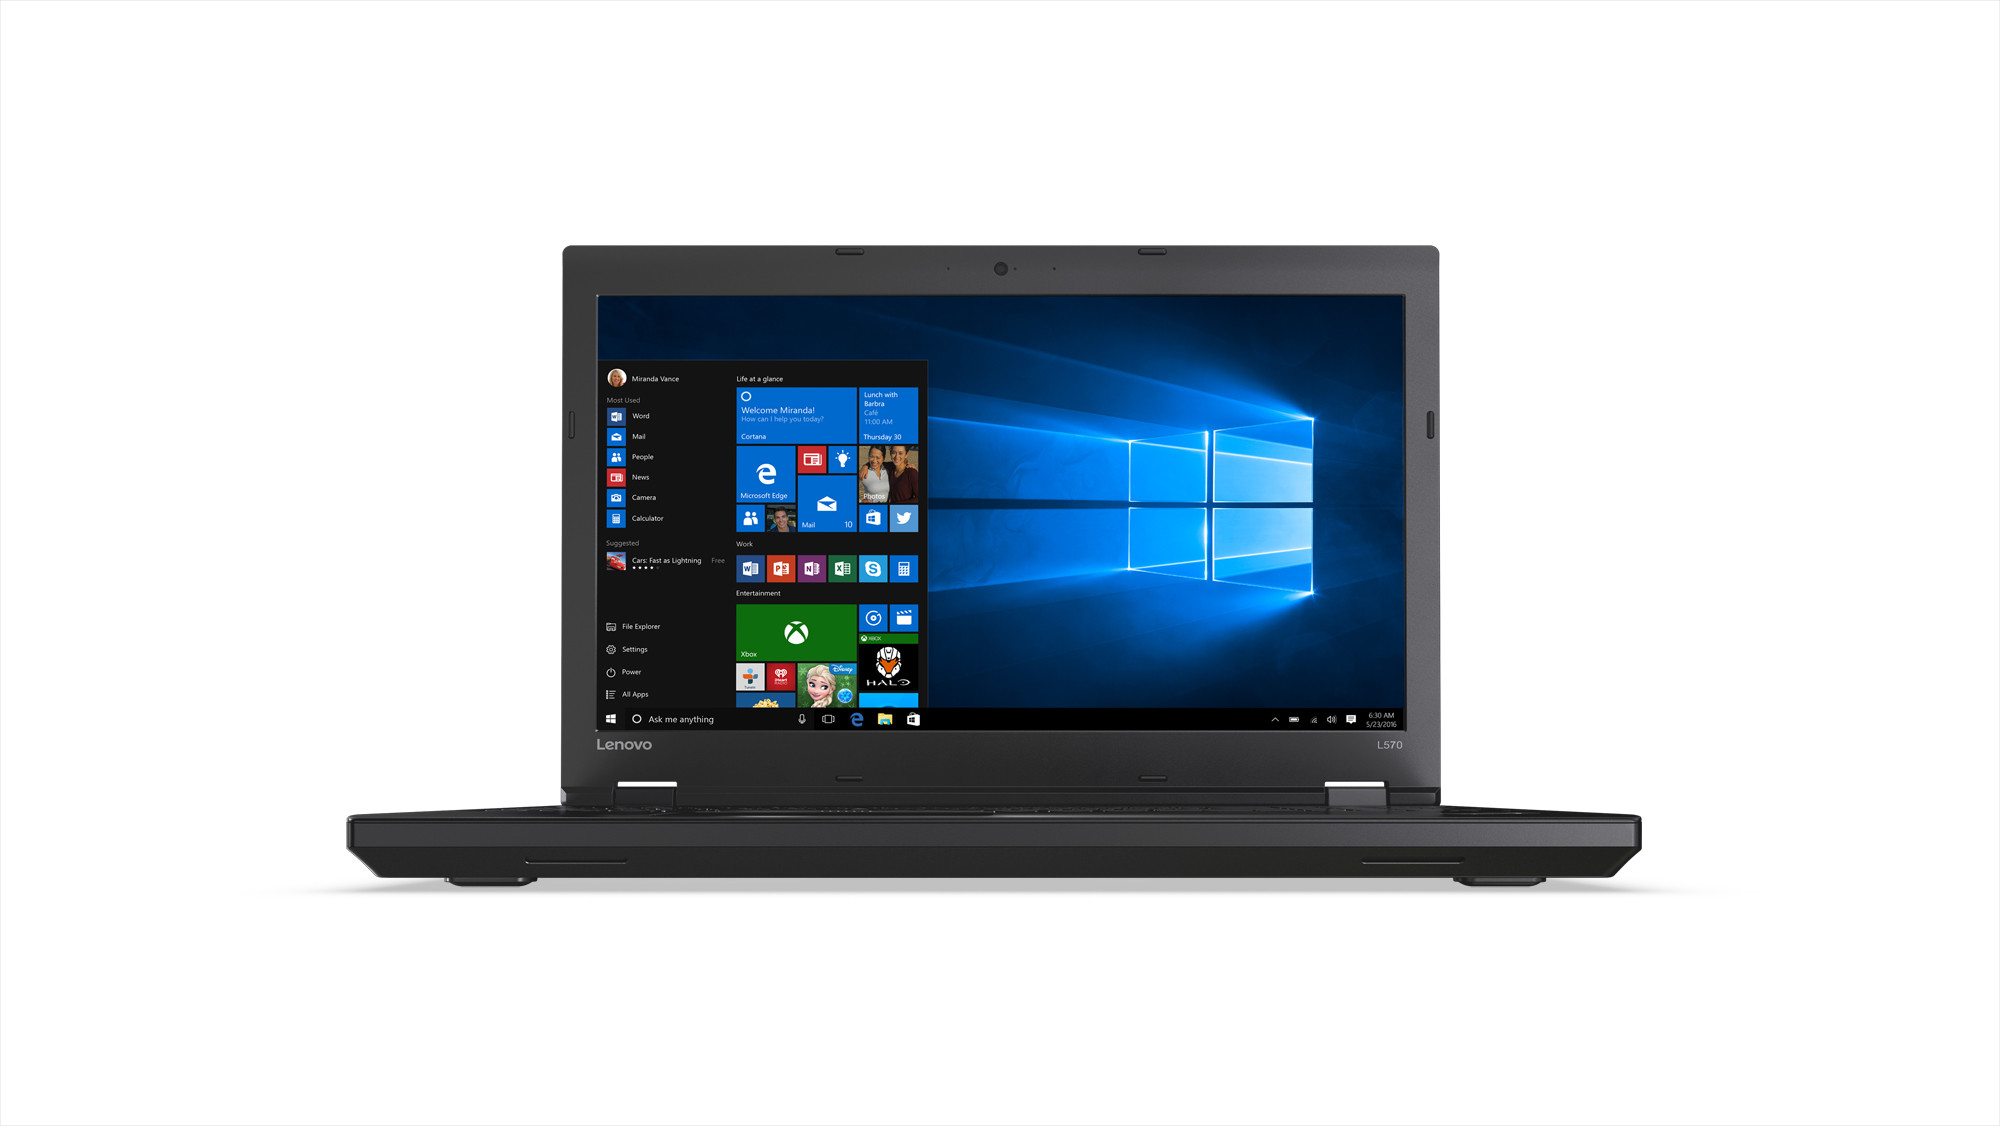 "Lenovo ThinkPad L570 i5-7200U/8GB/256GB SSD/HD Graphics 620/DVD±RW/15,6""FHD IPS/W10PRO/Black"